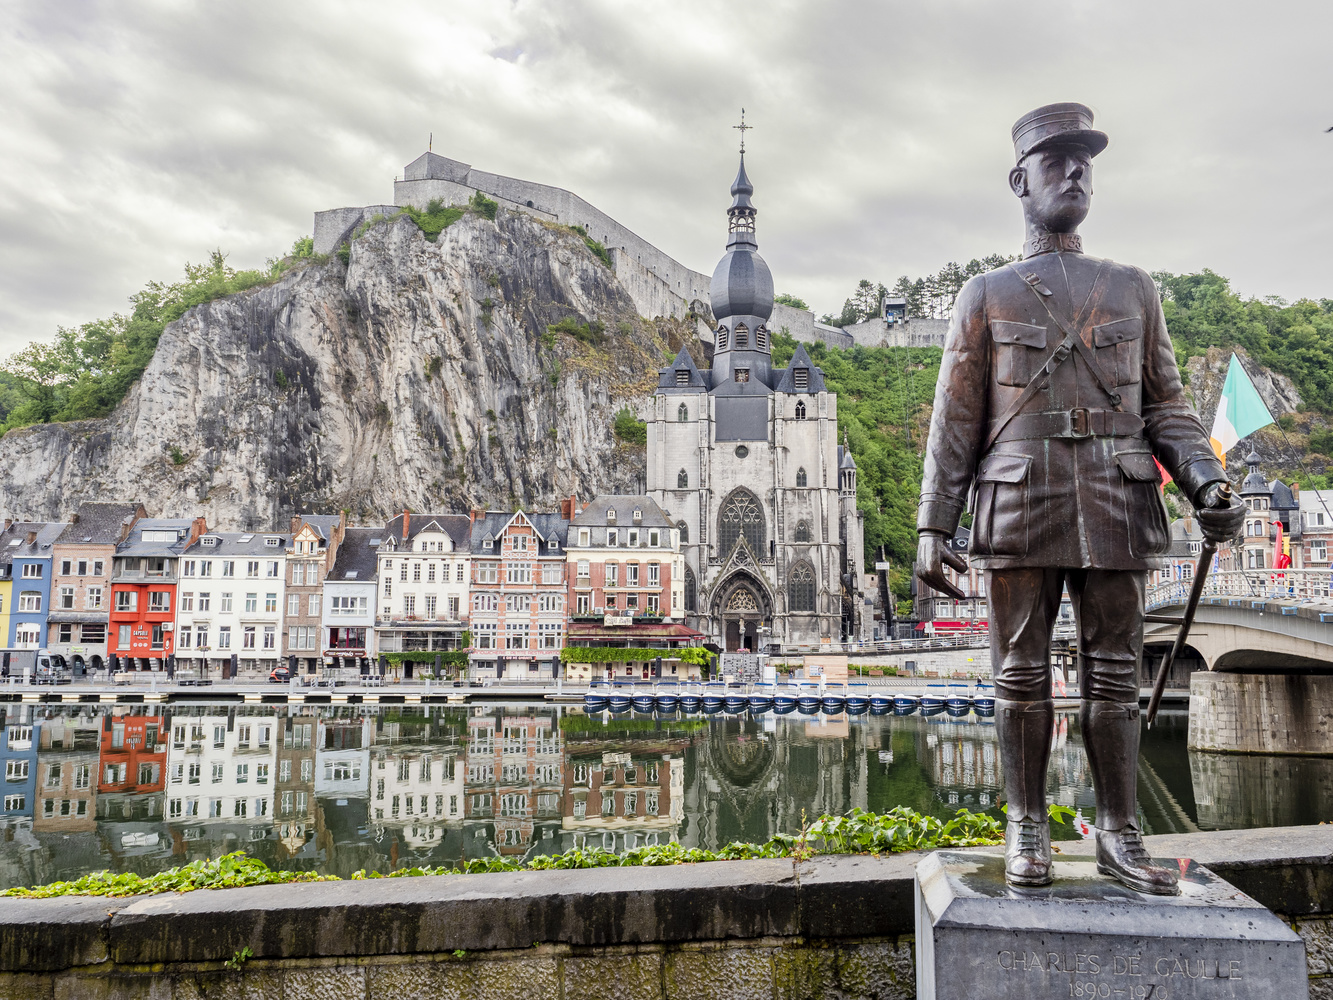 Dinant reflections by Richard Gale